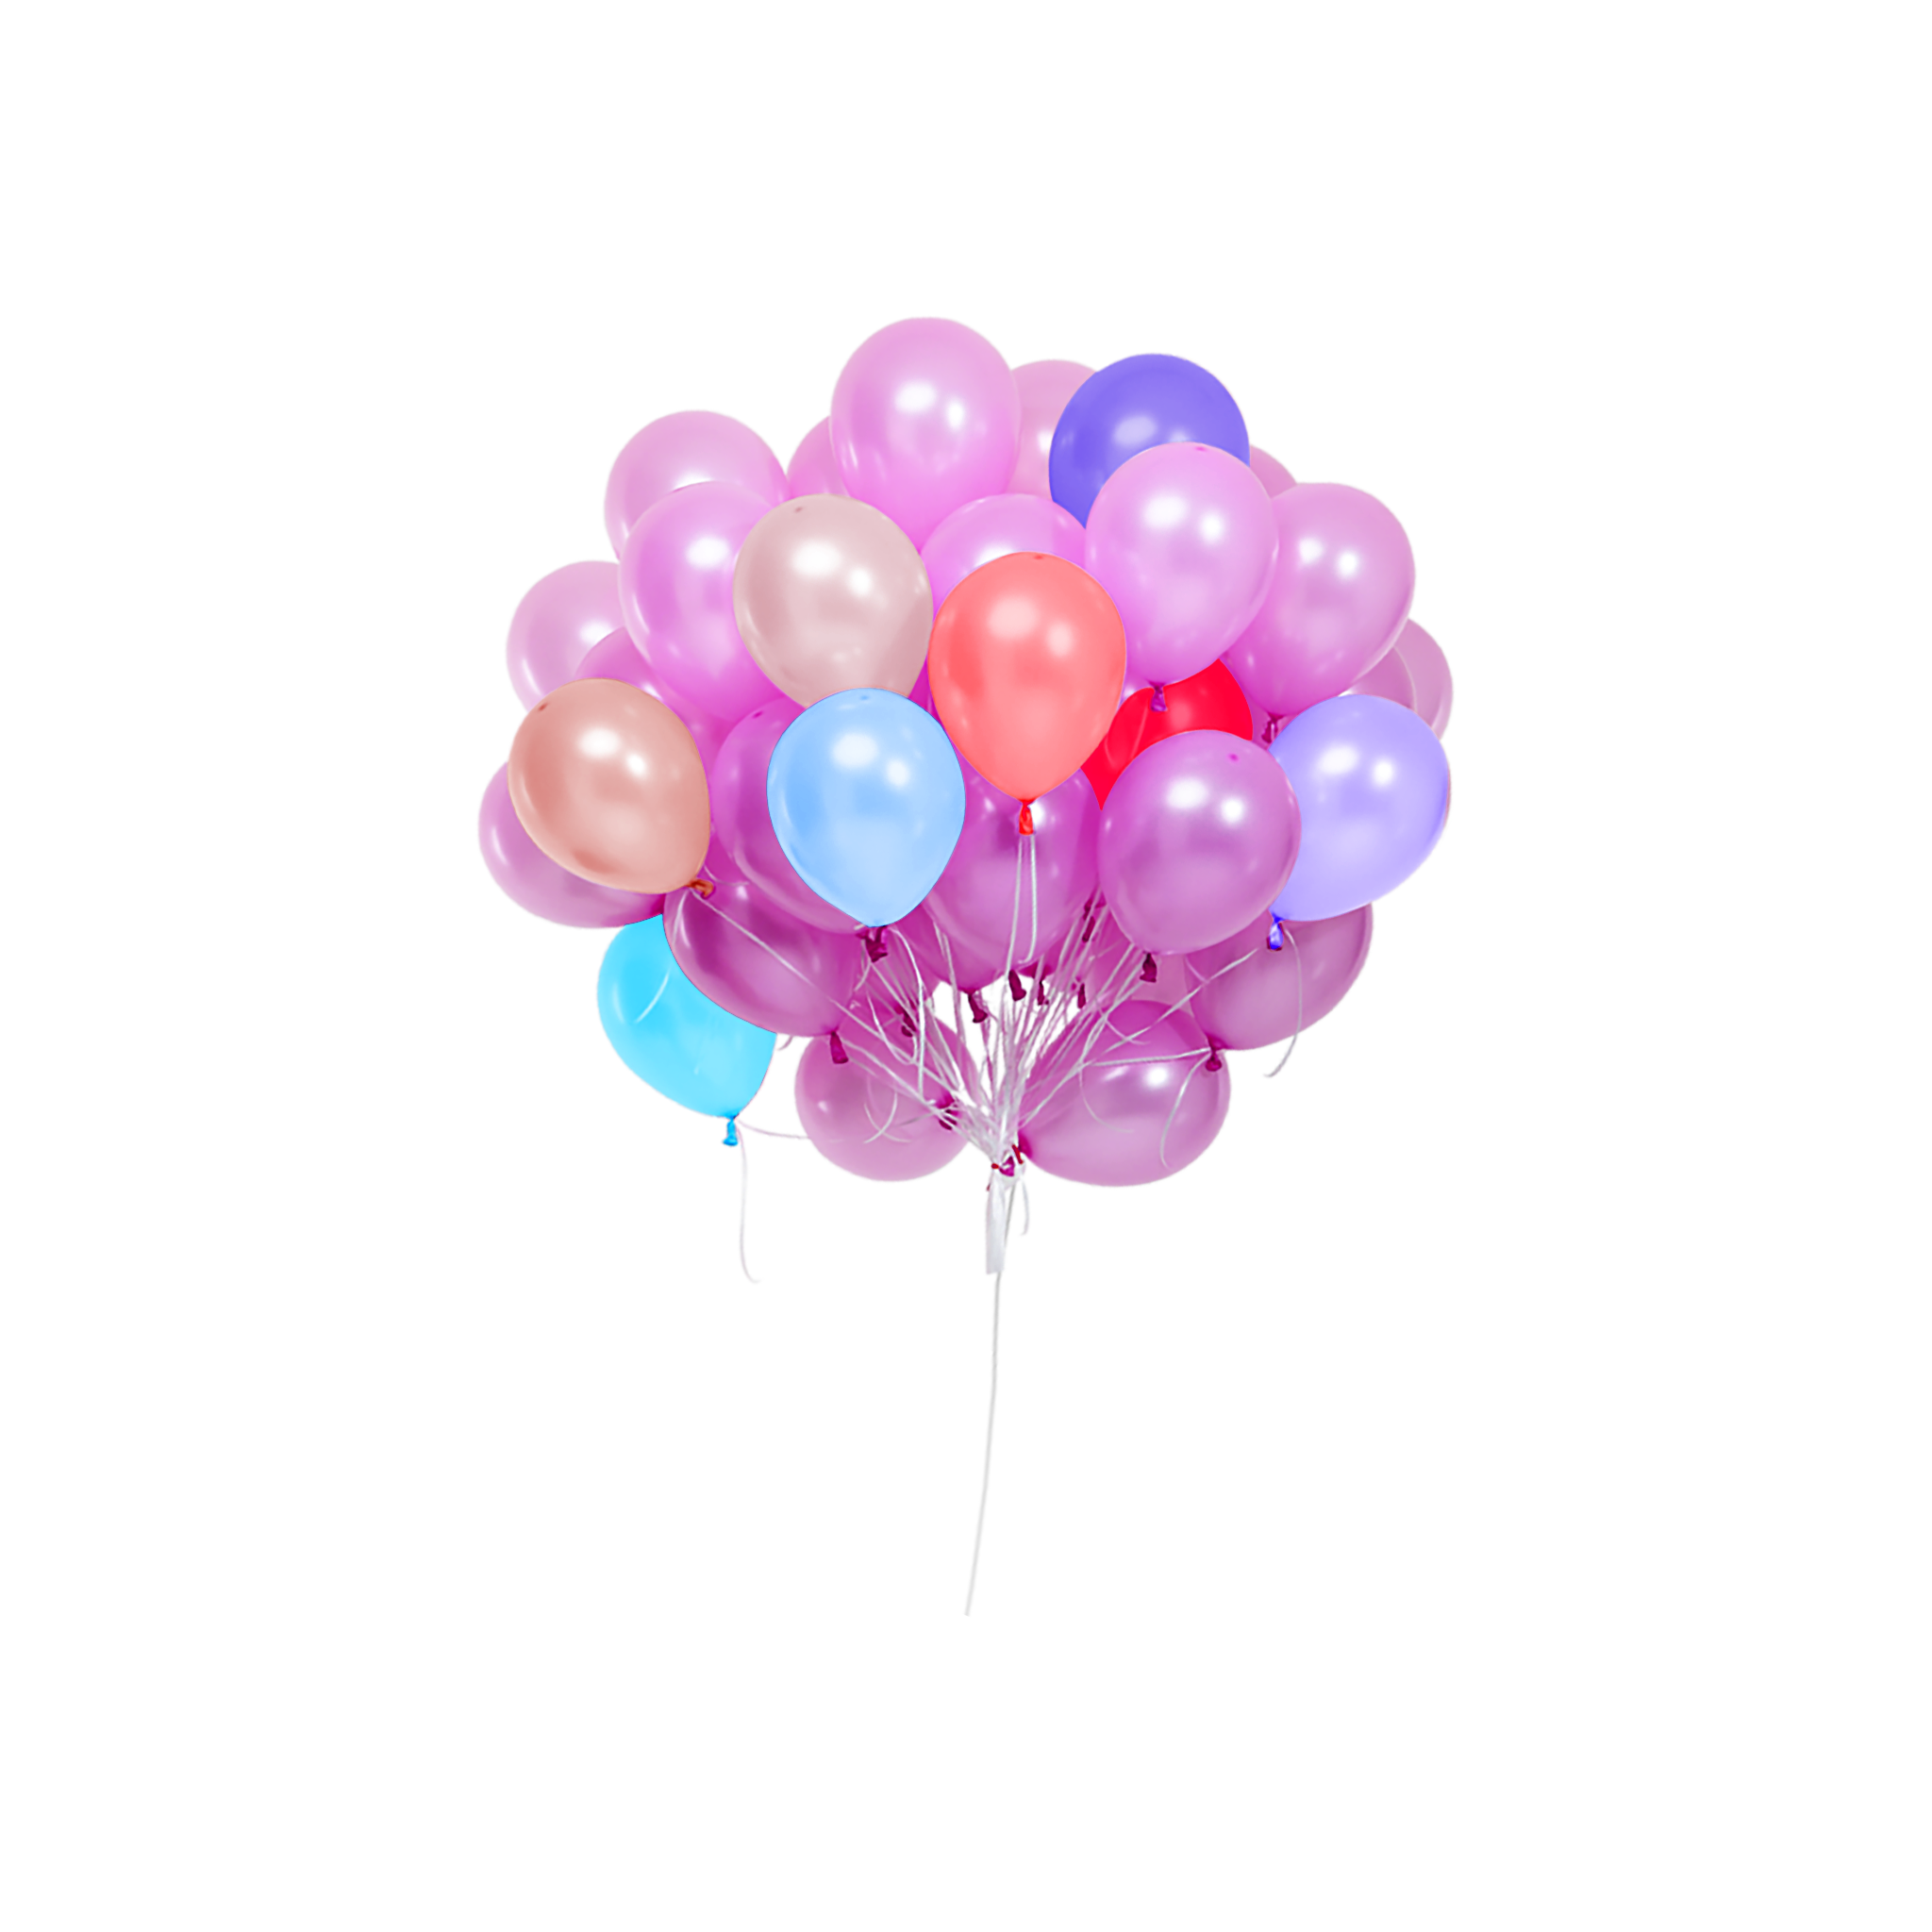 Balloon PNG.